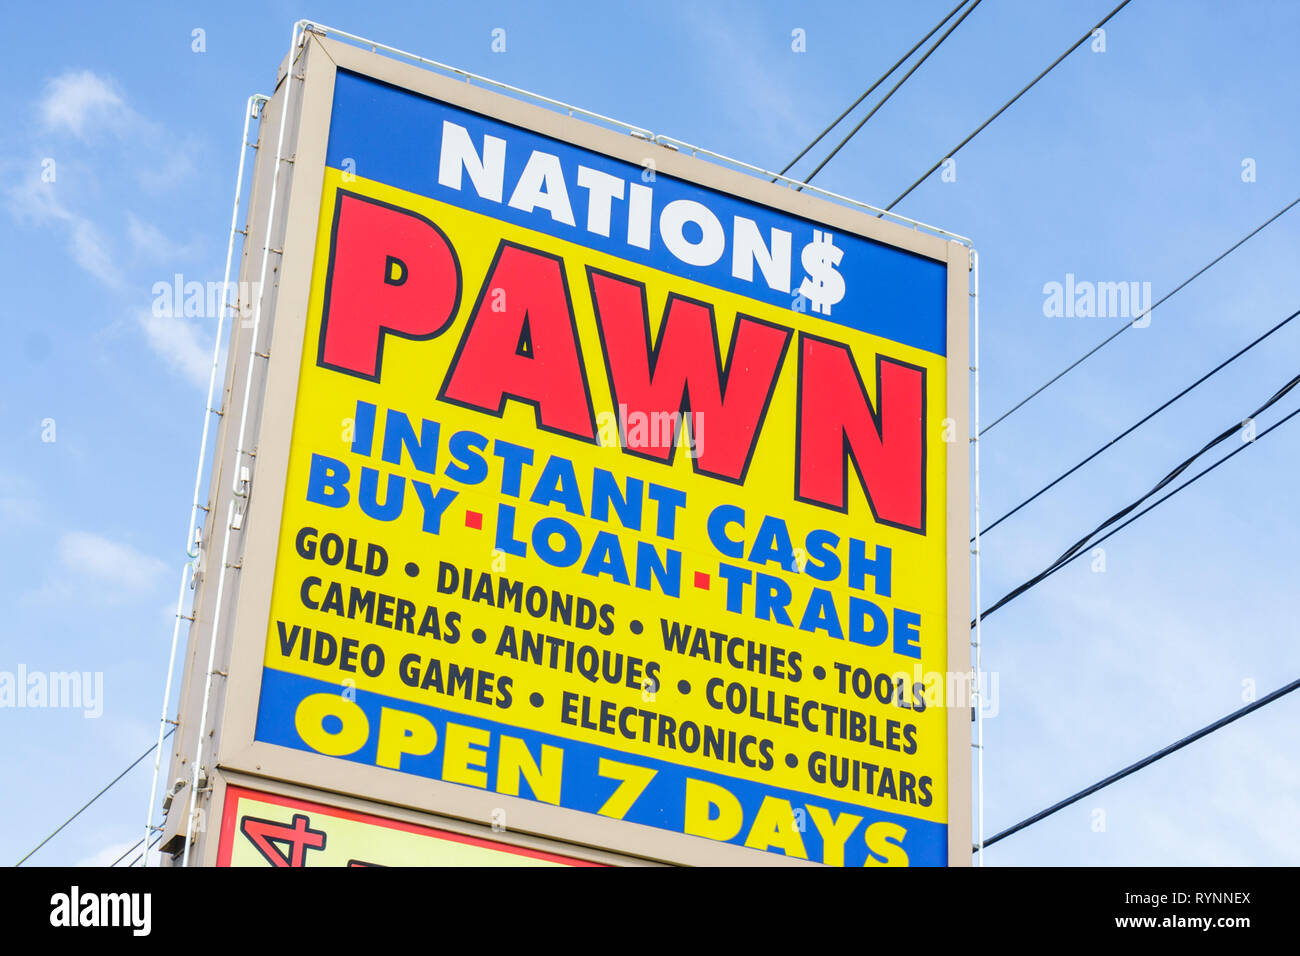 North American Pawn Shop Stock Photos & North American Pawn Shop